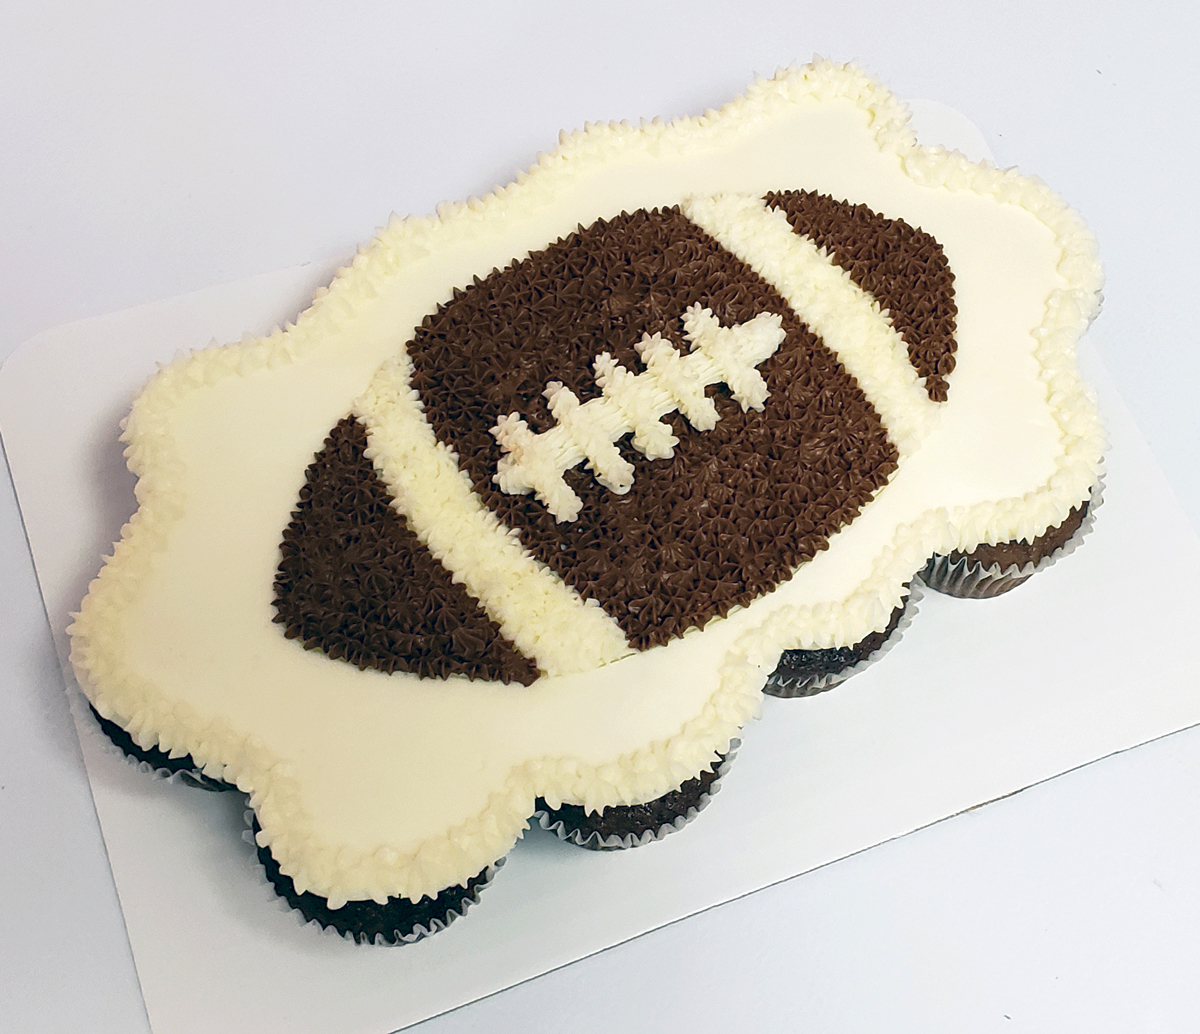 Some footballs are downright delicious